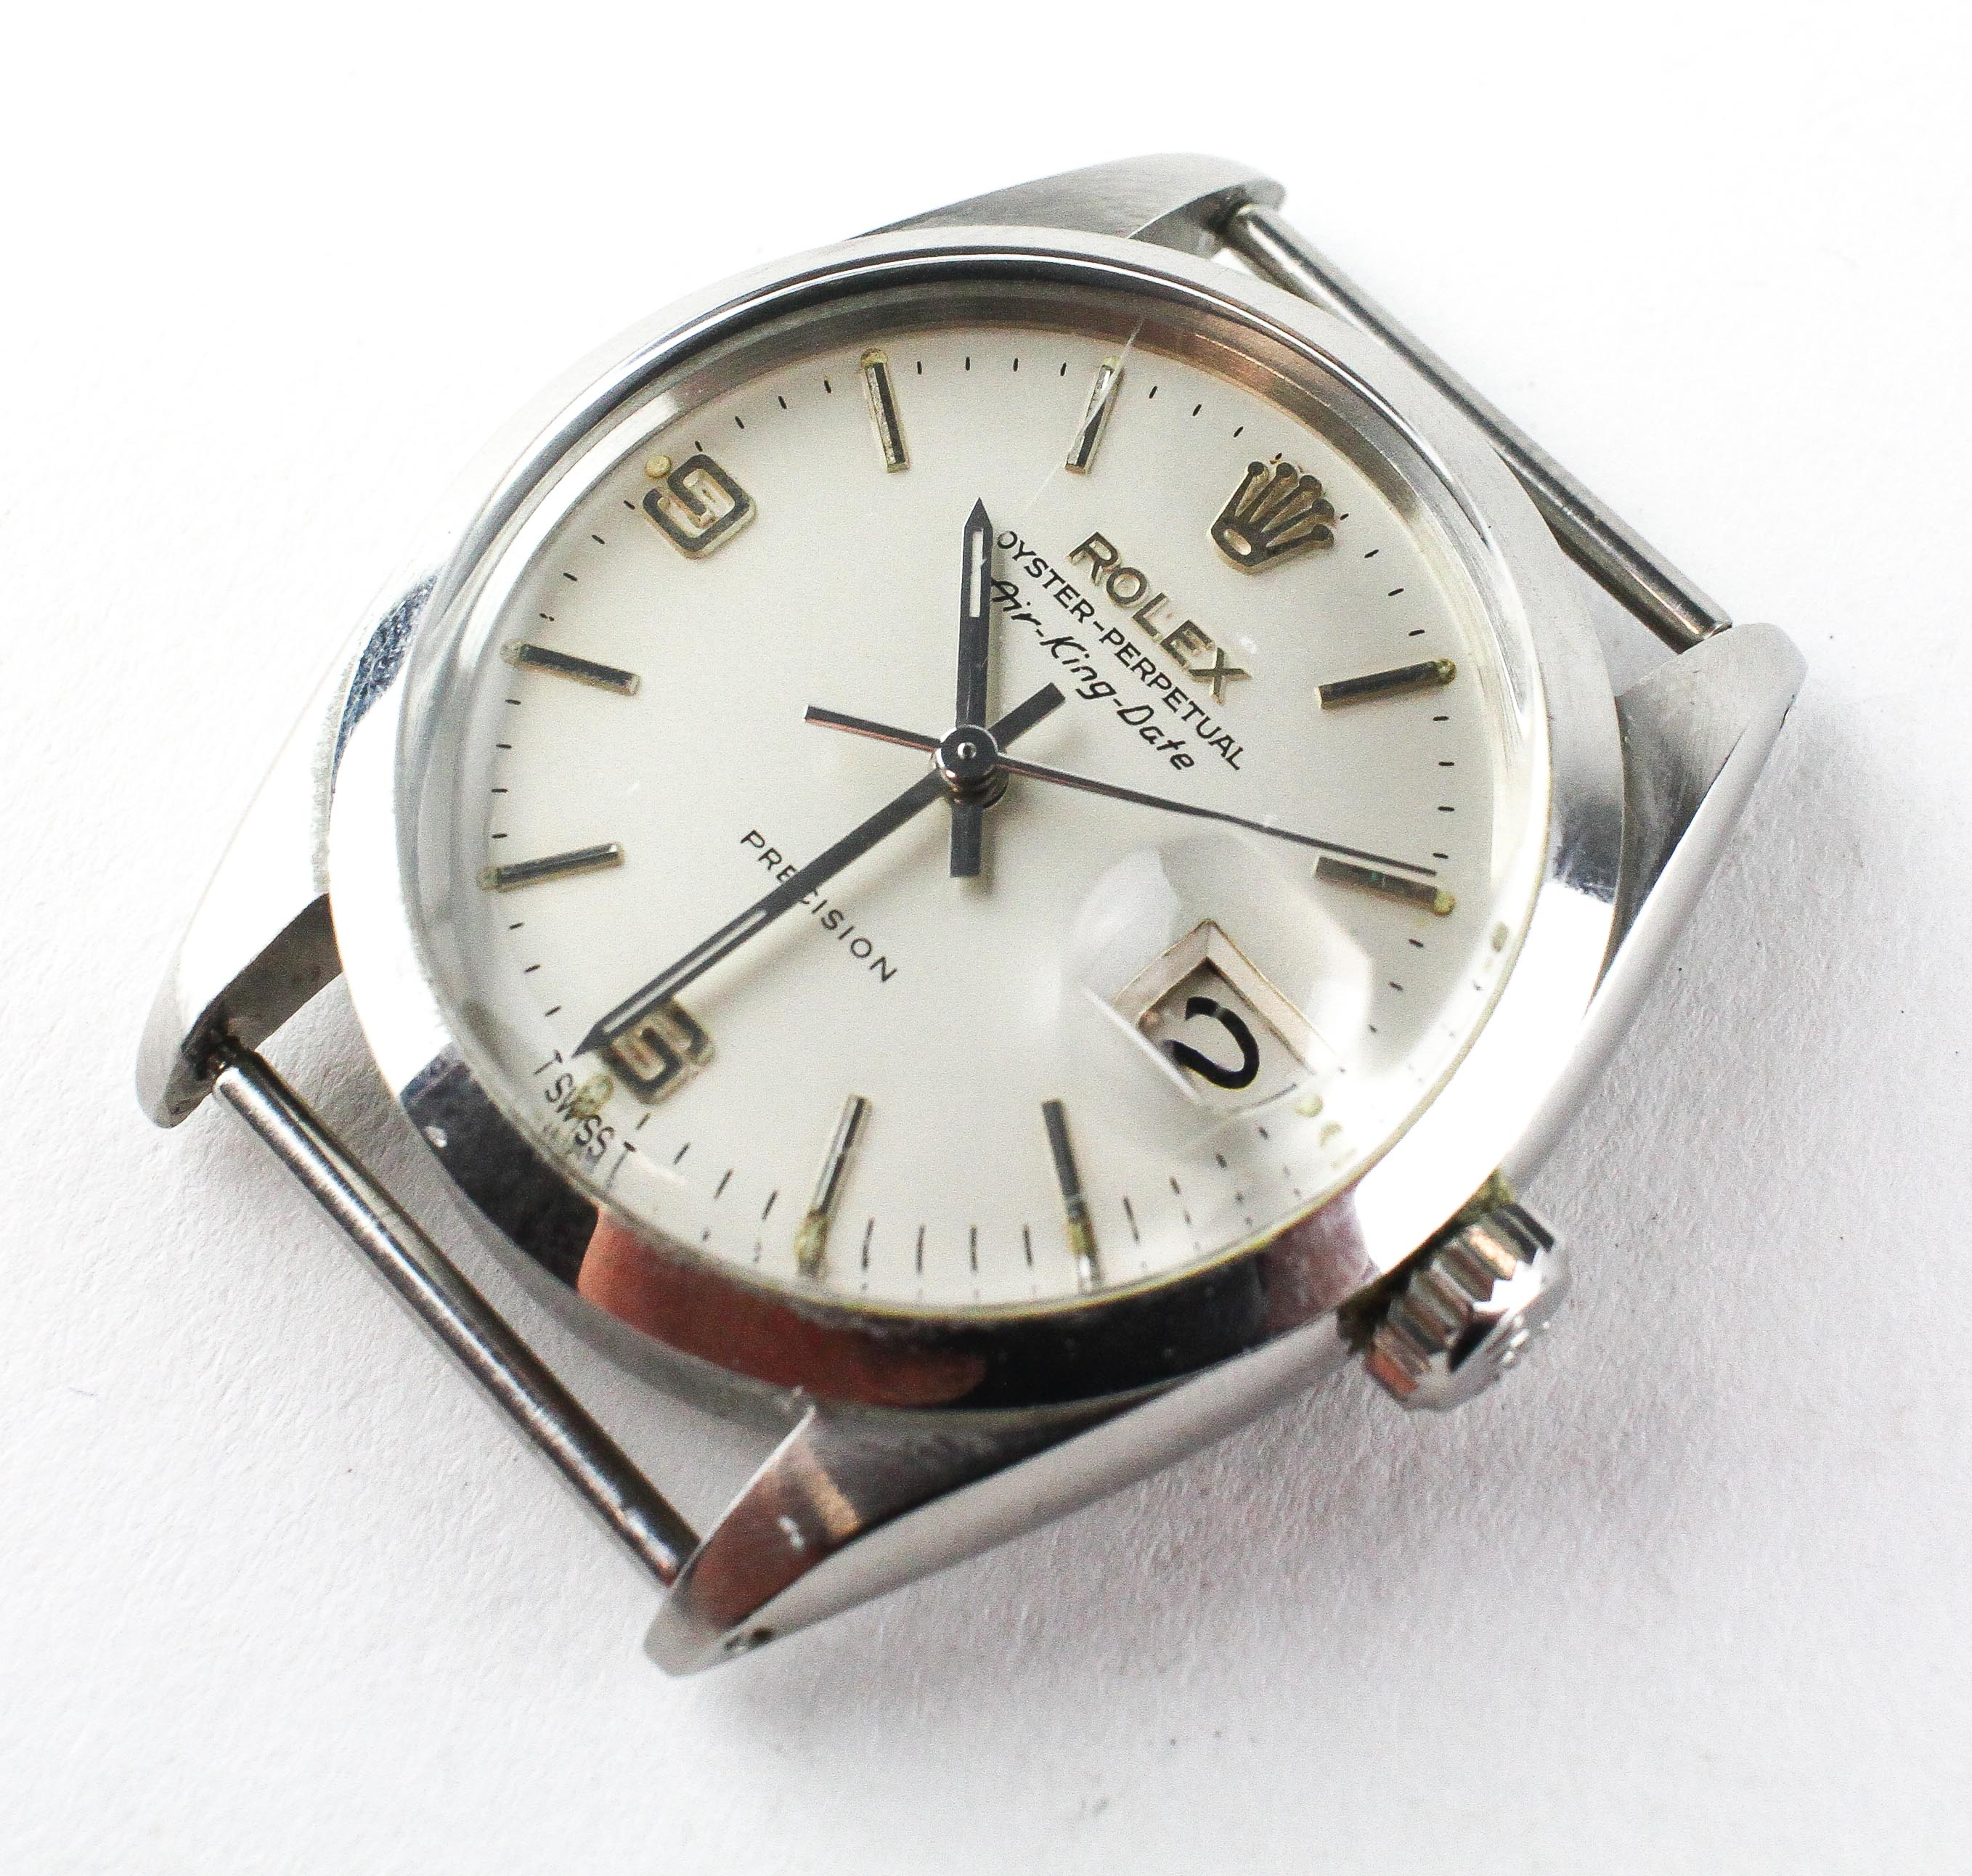 A stainless steel rolex oyster perpetual air king date wristwatch. - Image 2 of 11